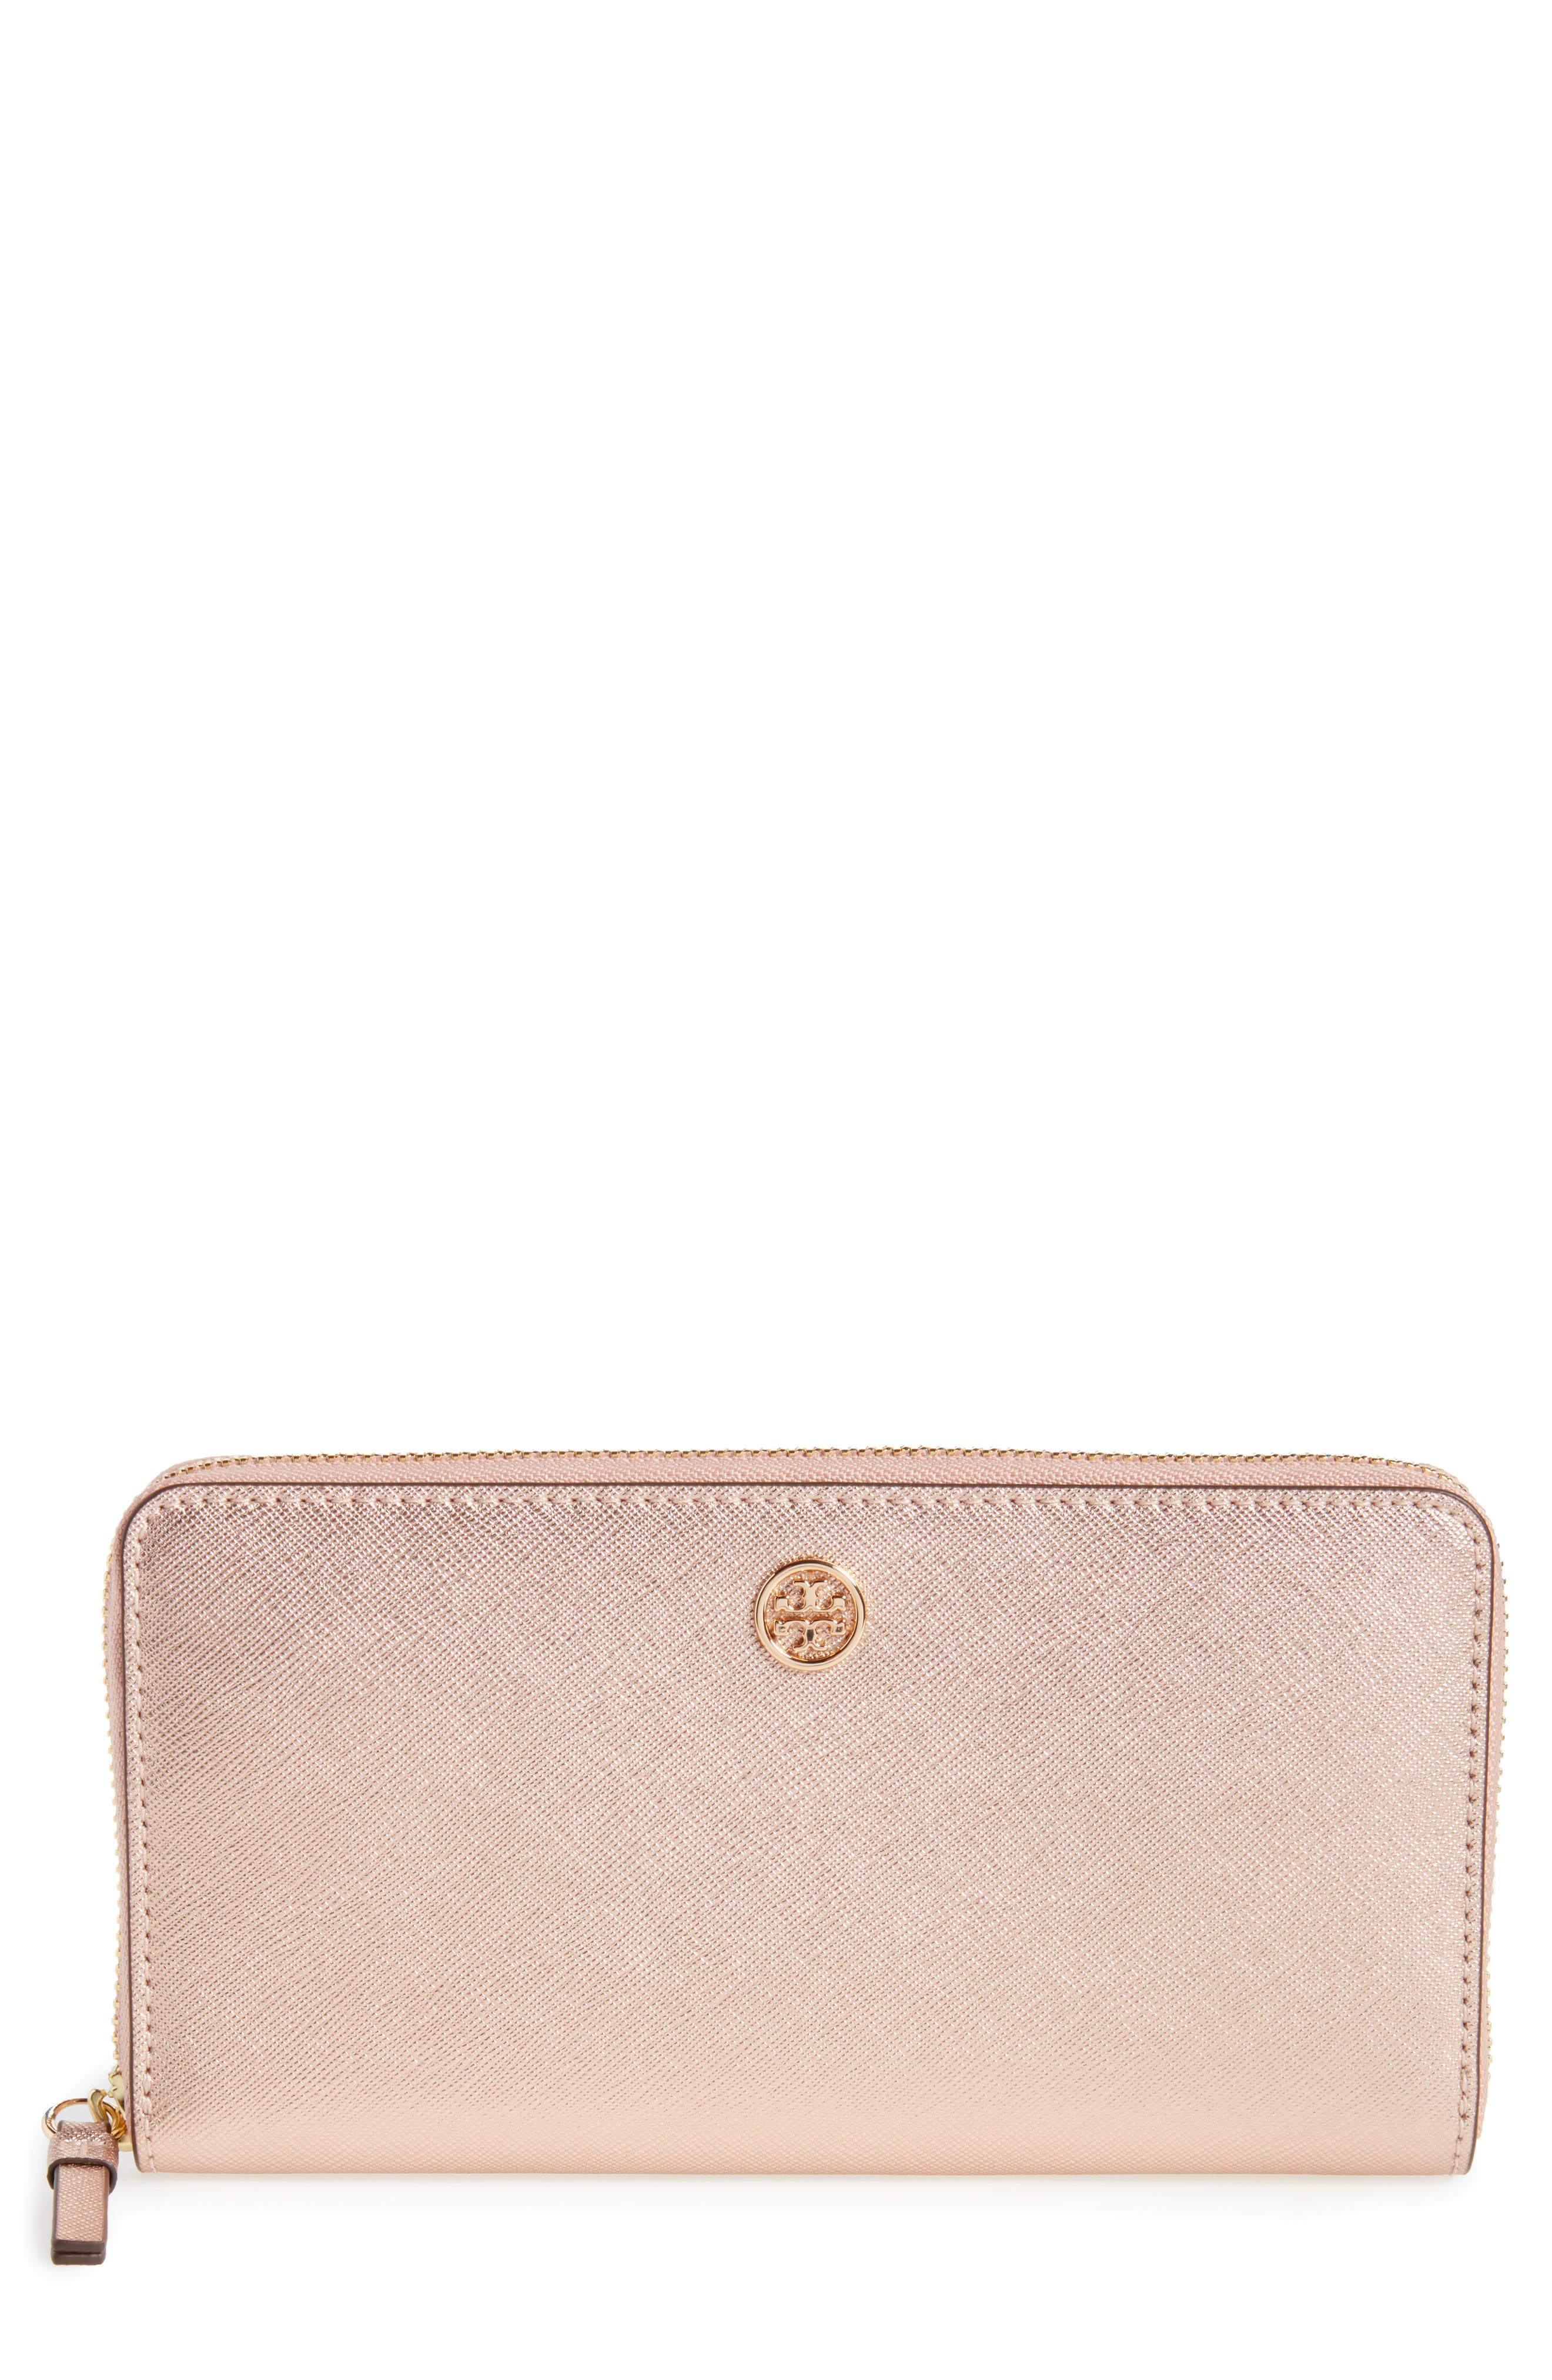 Robinson Metallic Leather Continental Wallet,                         Main,                         color, LIGHT ROSE GOLD